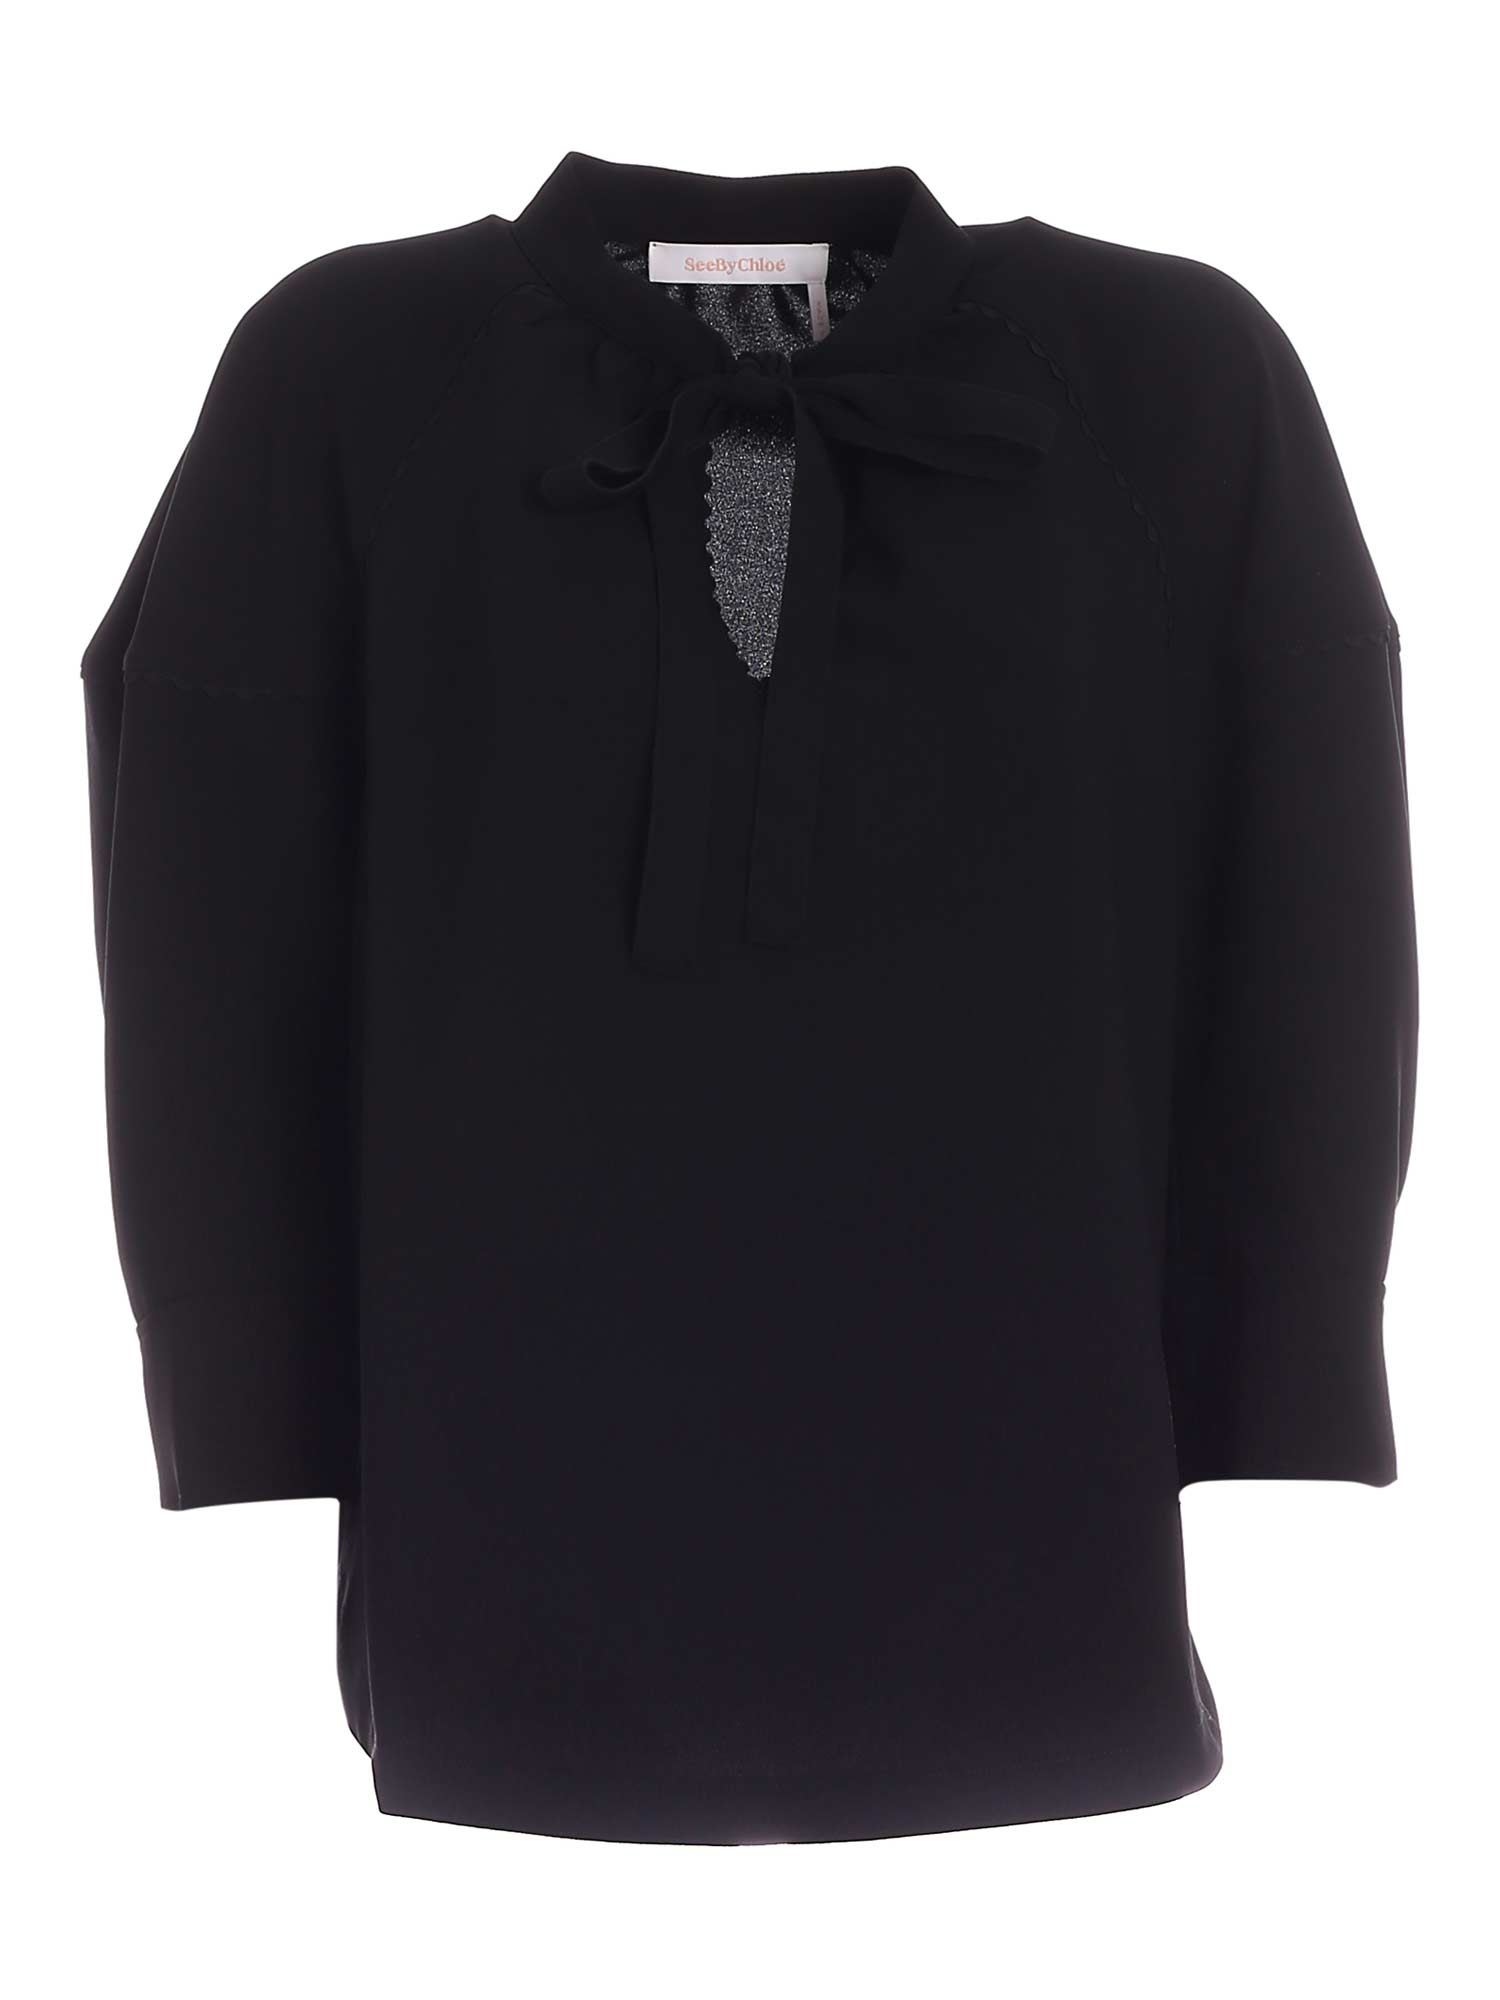 See By Chloé BOW BLOUSE IN BLACK